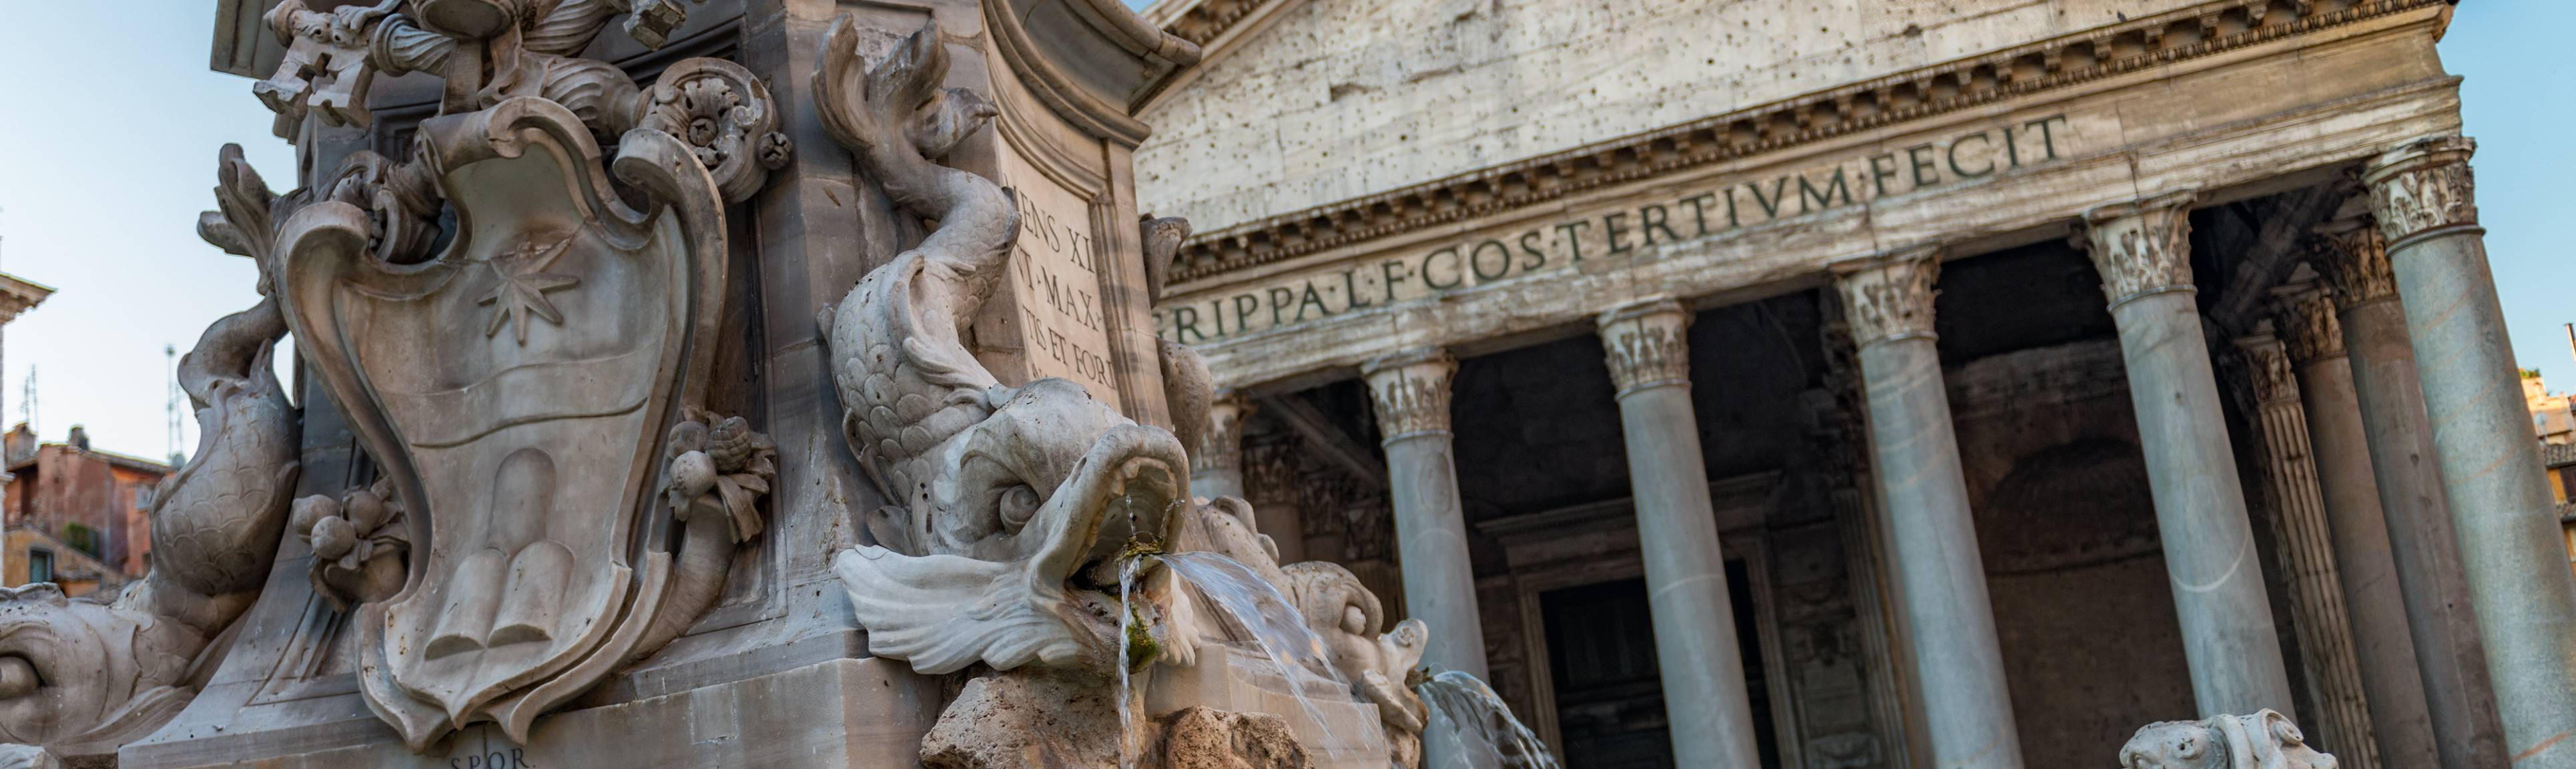 Detail of fountain and front colonnade of Pantheon in Rome